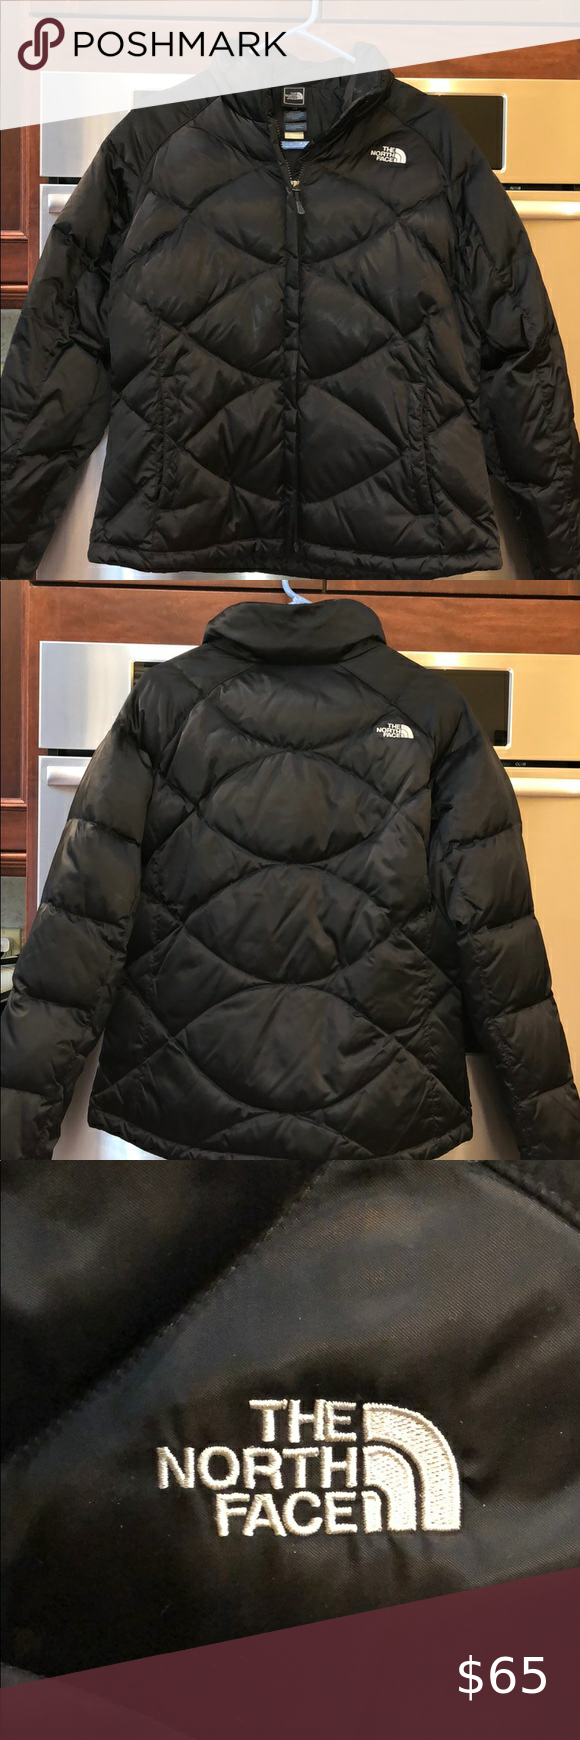 Women S North Face Jacket 550 In 2020 North Face Jacket Womens North Face Jacket Black North Face Jacket [ 1740 x 580 Pixel ]